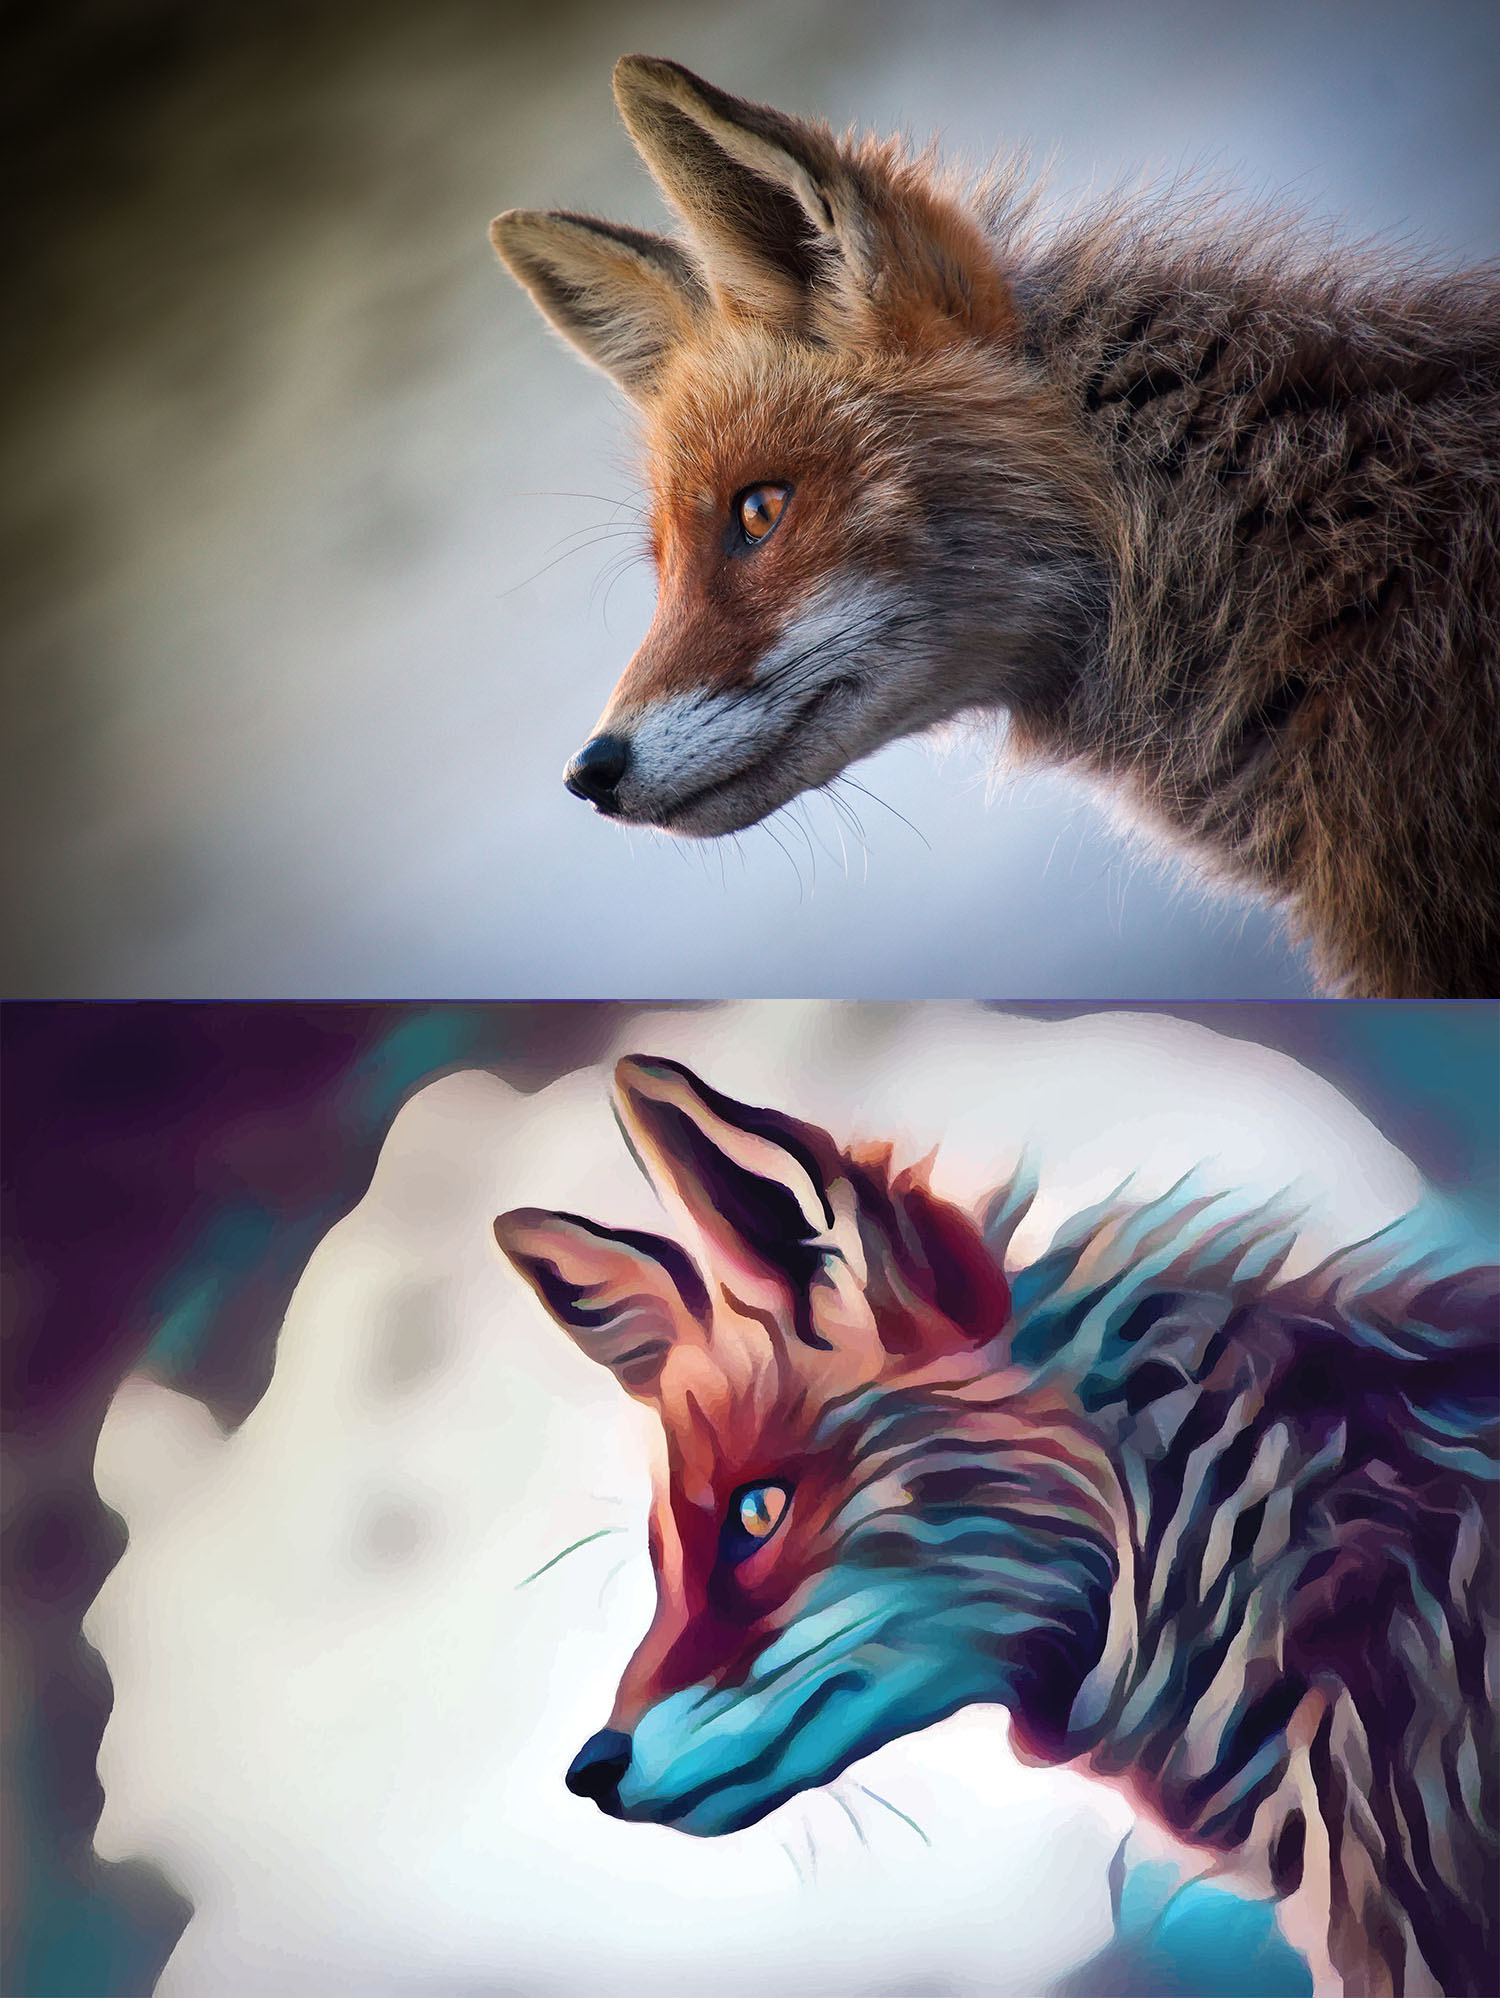 Before and after stylized image of a fox's head in profile